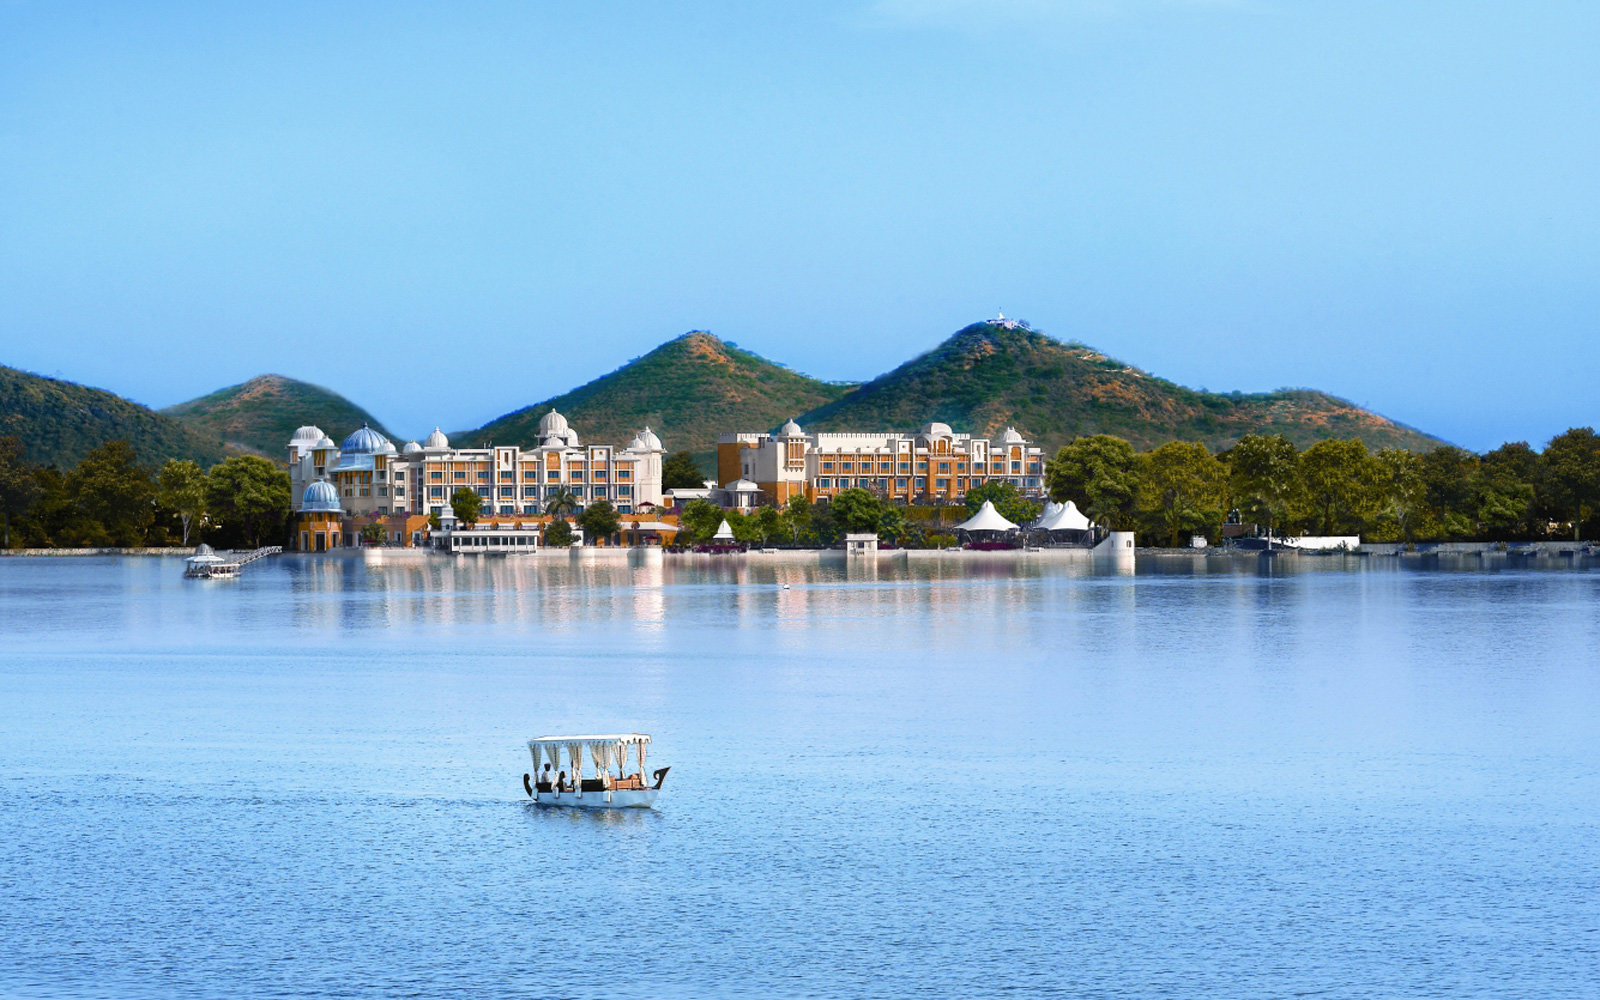 View of the Leela Palace Udaipur, the best resort in India according to Travel + Leisure